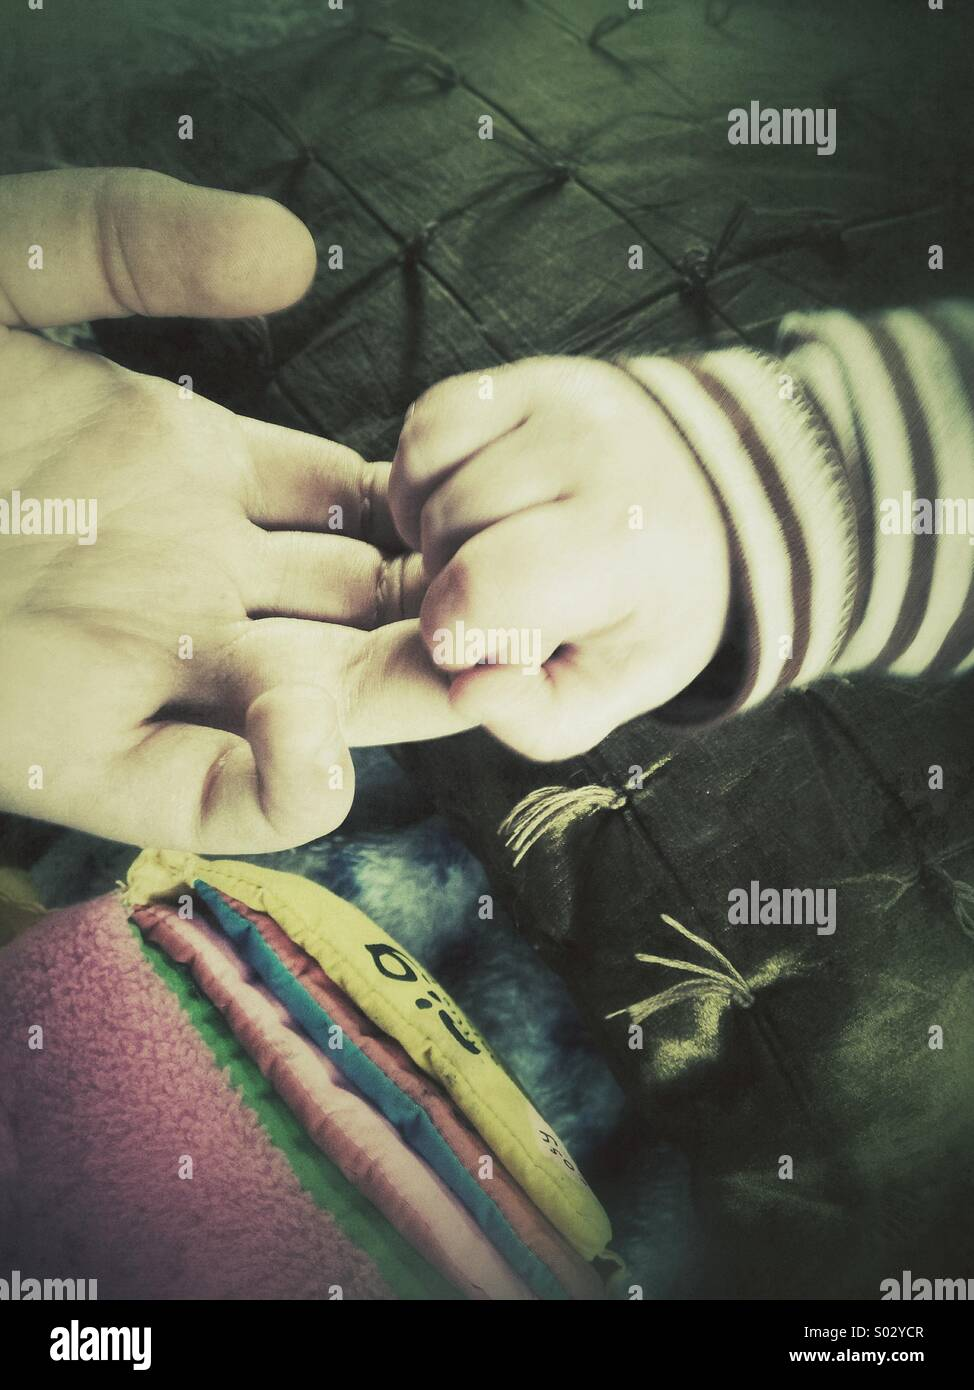 L'enfance, baby's hand Holding on to teenager's hand, filtre rétro Photo Stock